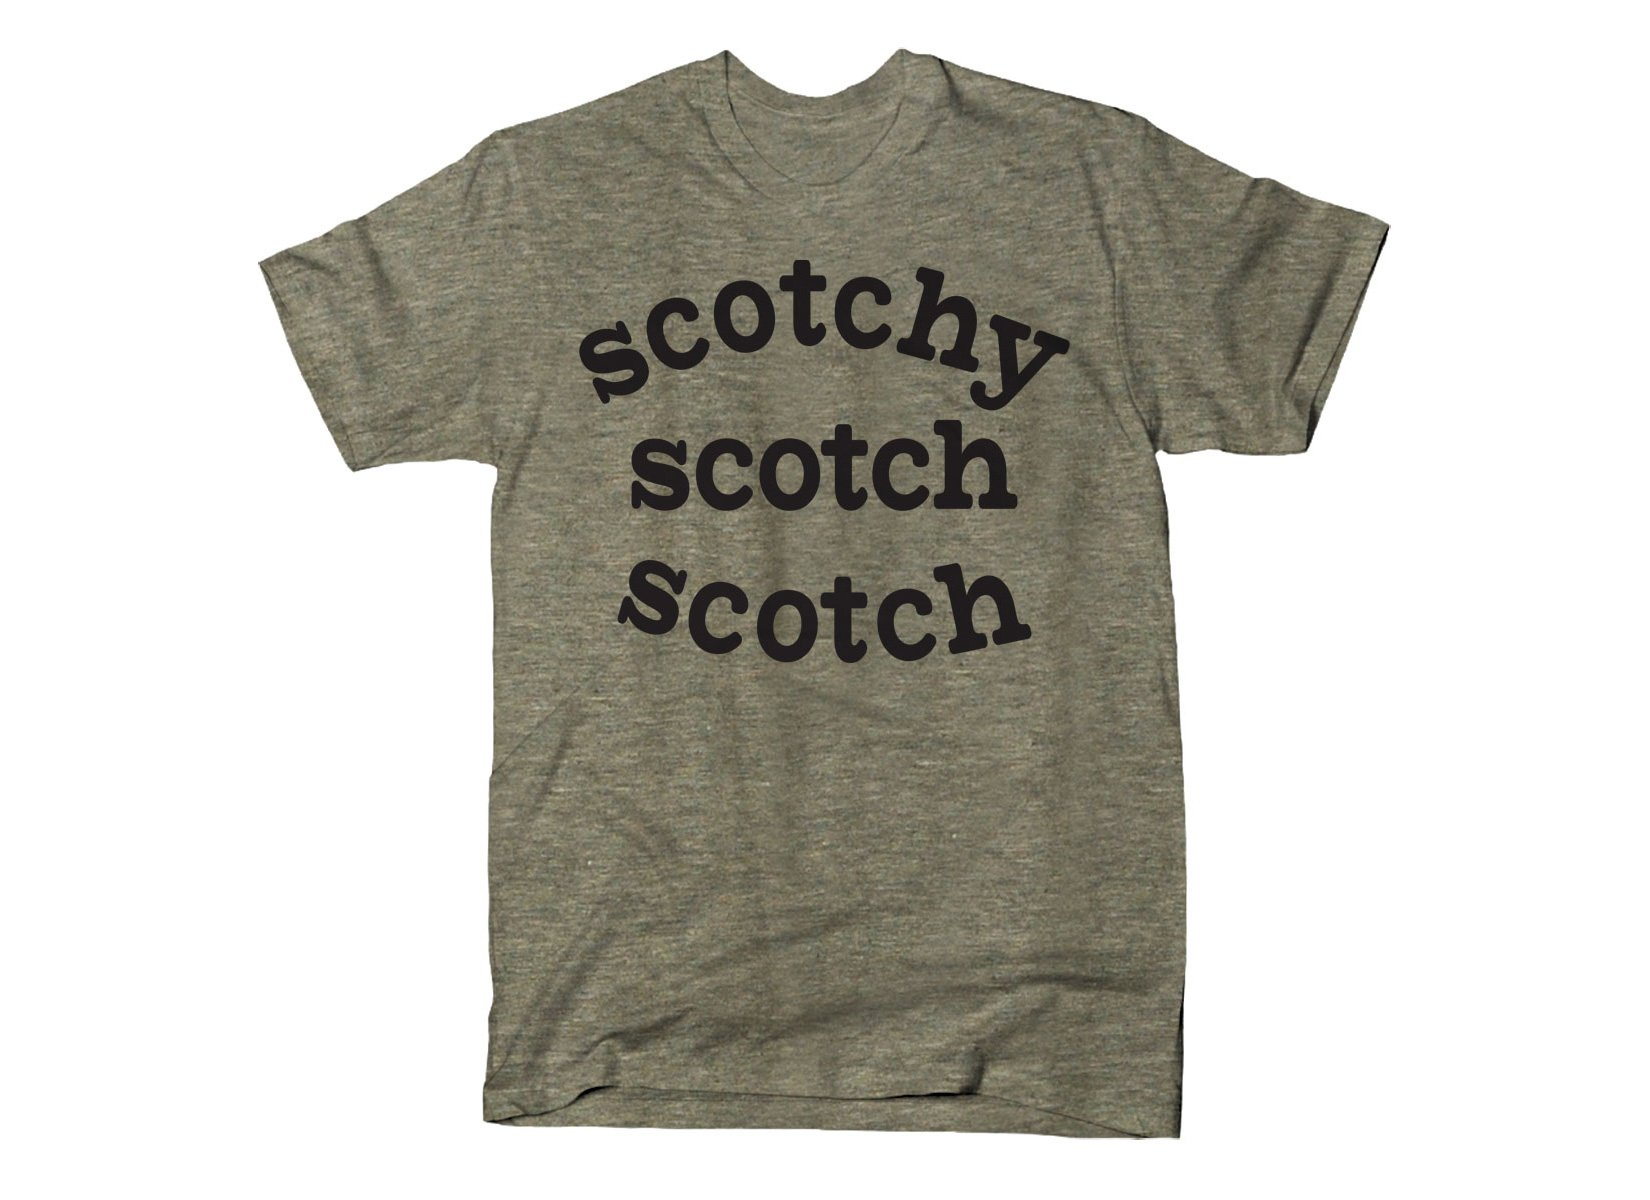 Scotchy Scotch Scotch on Mens T-Shirt